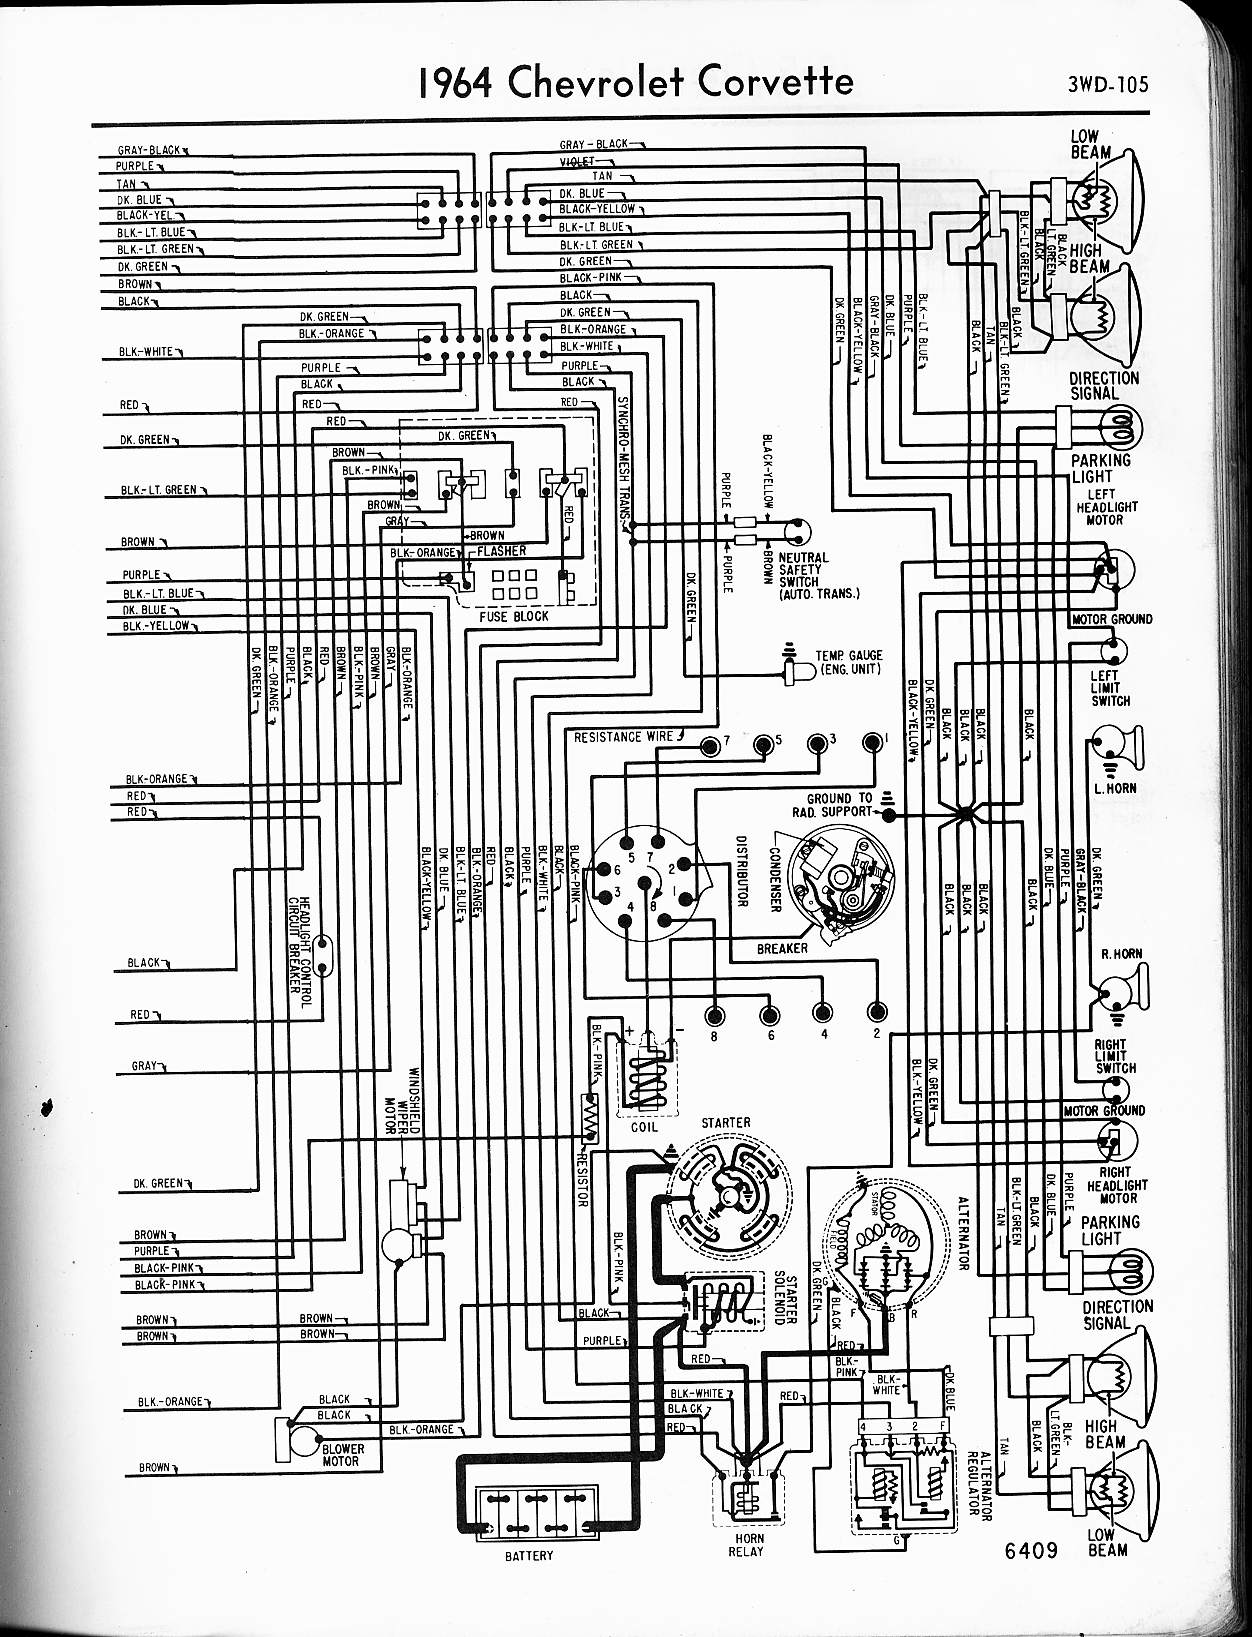 MWireChev64_3WD 105 57 65 chevy wiring diagrams 1962 impala wiring diagram at webbmarketing.co